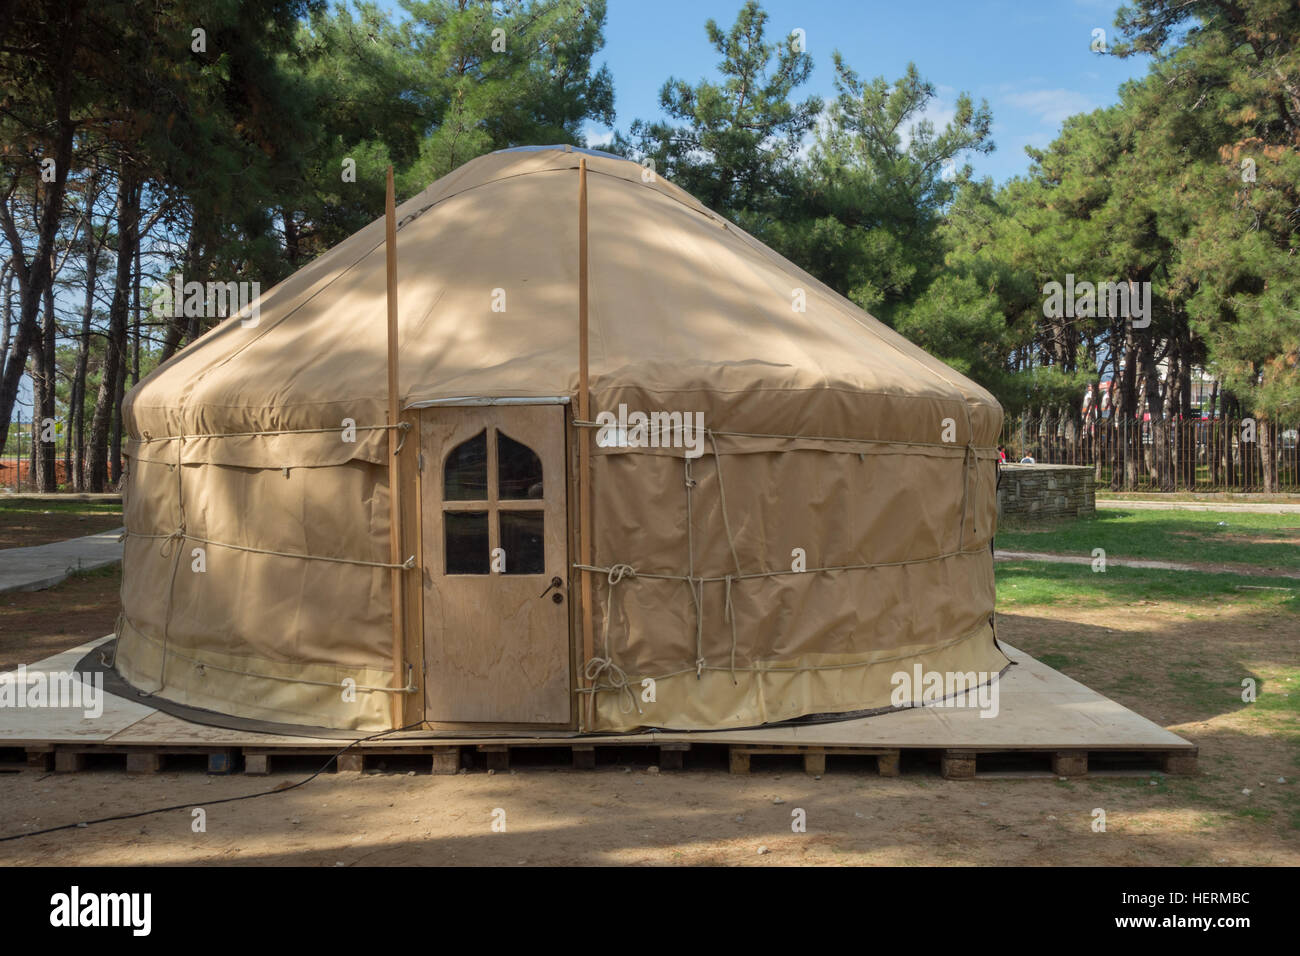 Yurt A Mongolian Ger Portable Bent Dwelling Structure Stock Photo Alamy Each plays a vital role in the structure. https www alamy com stock photo yurt a mongolian ger portable bent dwelling structure traditionally 129598656 html